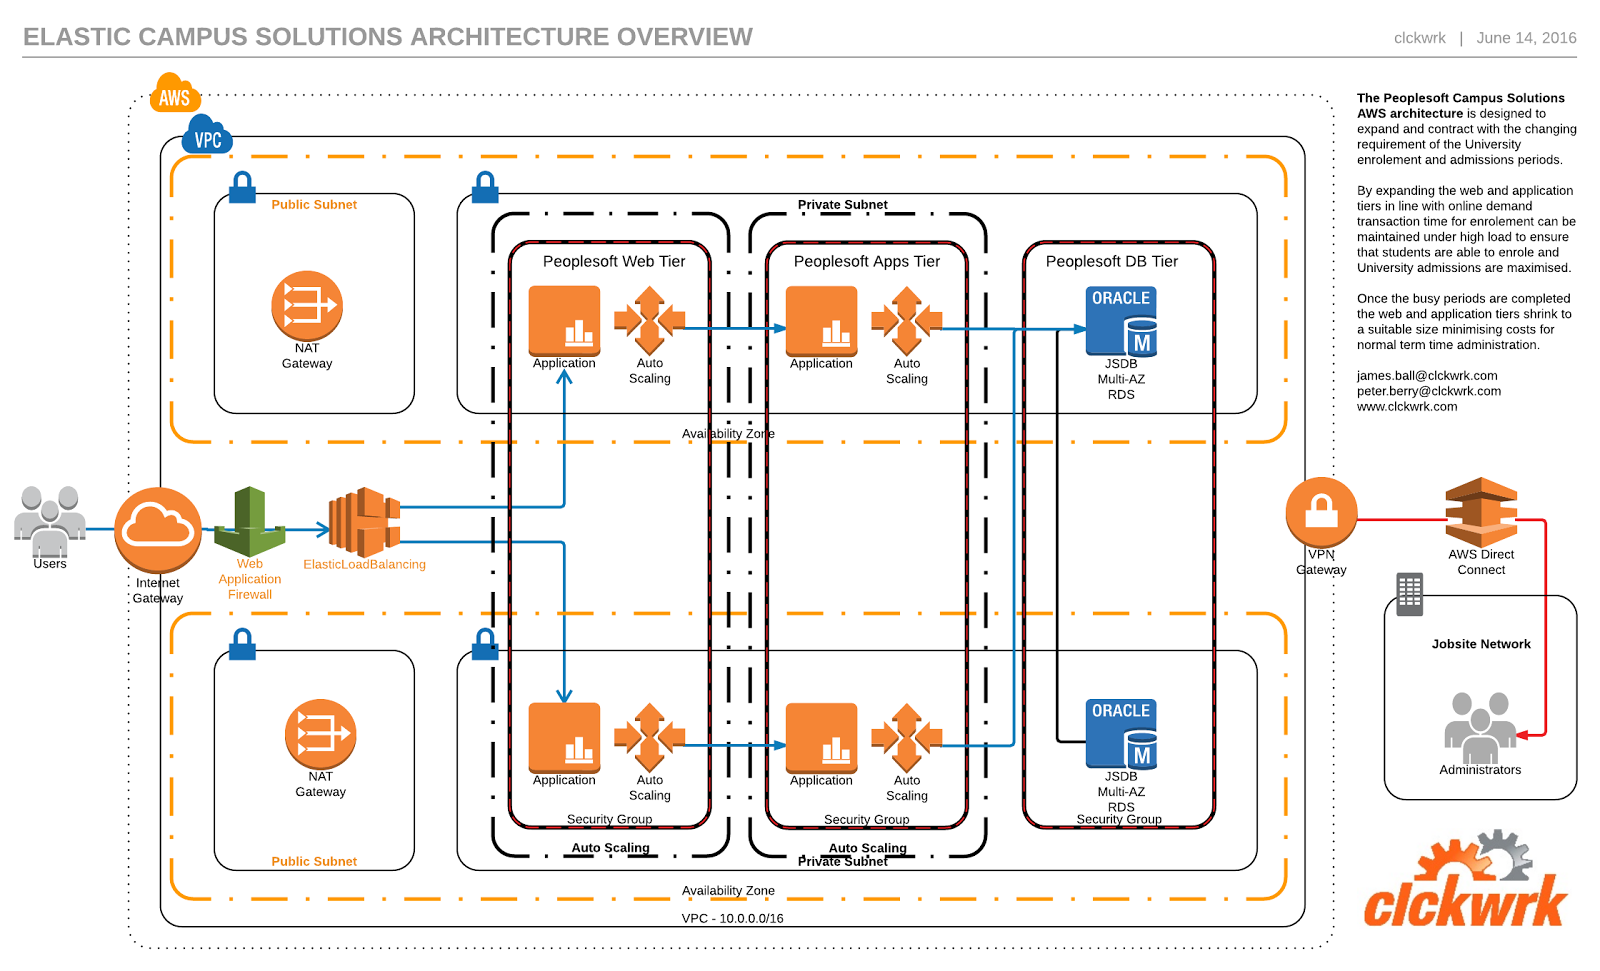 Clckwrk design blueprint peoplesoft campus solutions on aws to ensure that both the administrative and student users can access data at all times this solution uses multiple web and application tier servers malvernweather Images